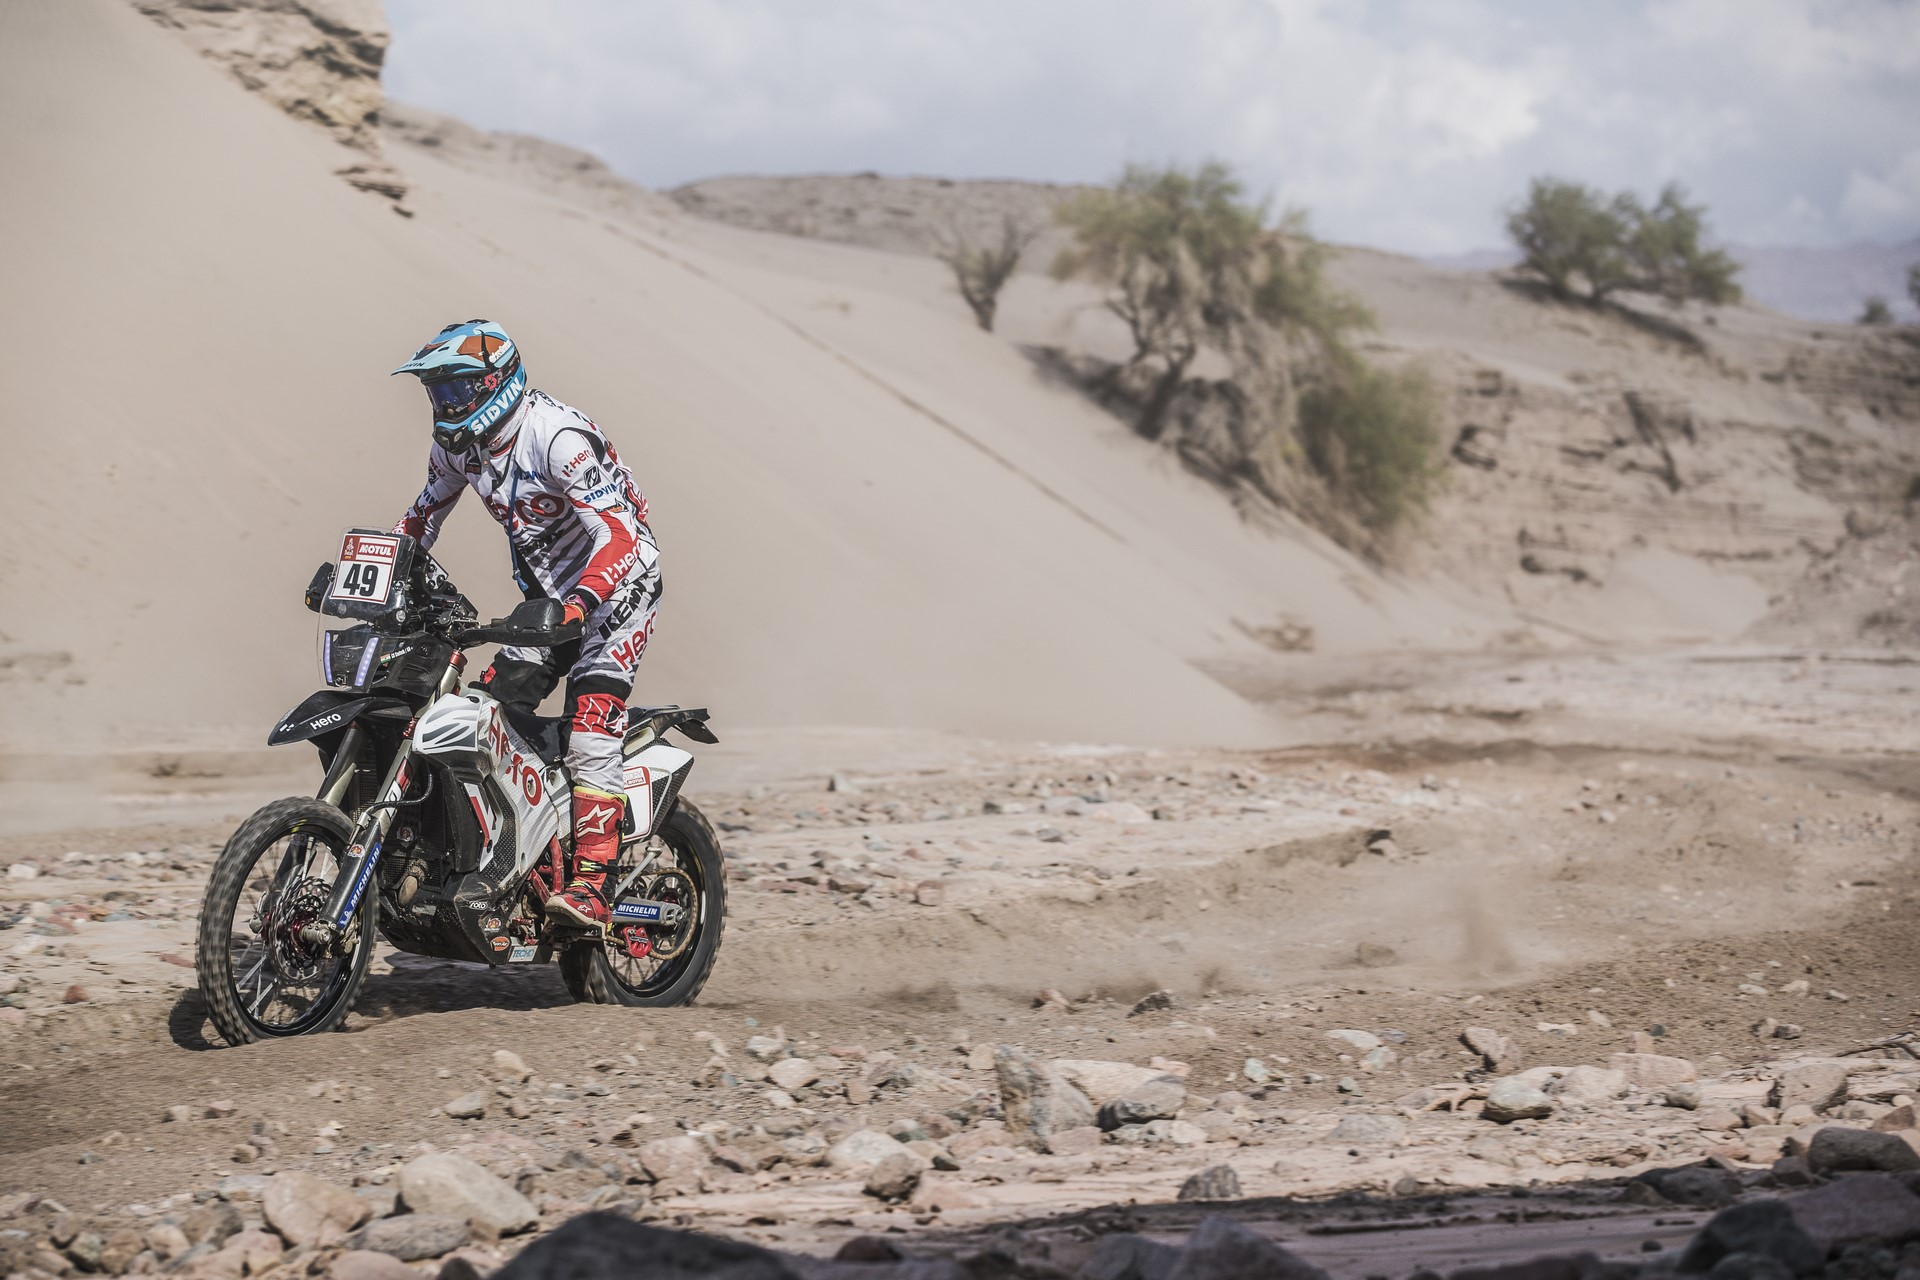 Santosh Shivashankar Chunchunguppe (IND) of Hero Motorsports Rally Team races during stage 11 of Rally Dakar 2018 from Belen to Chilecito, Argentina on January 17, 2018.